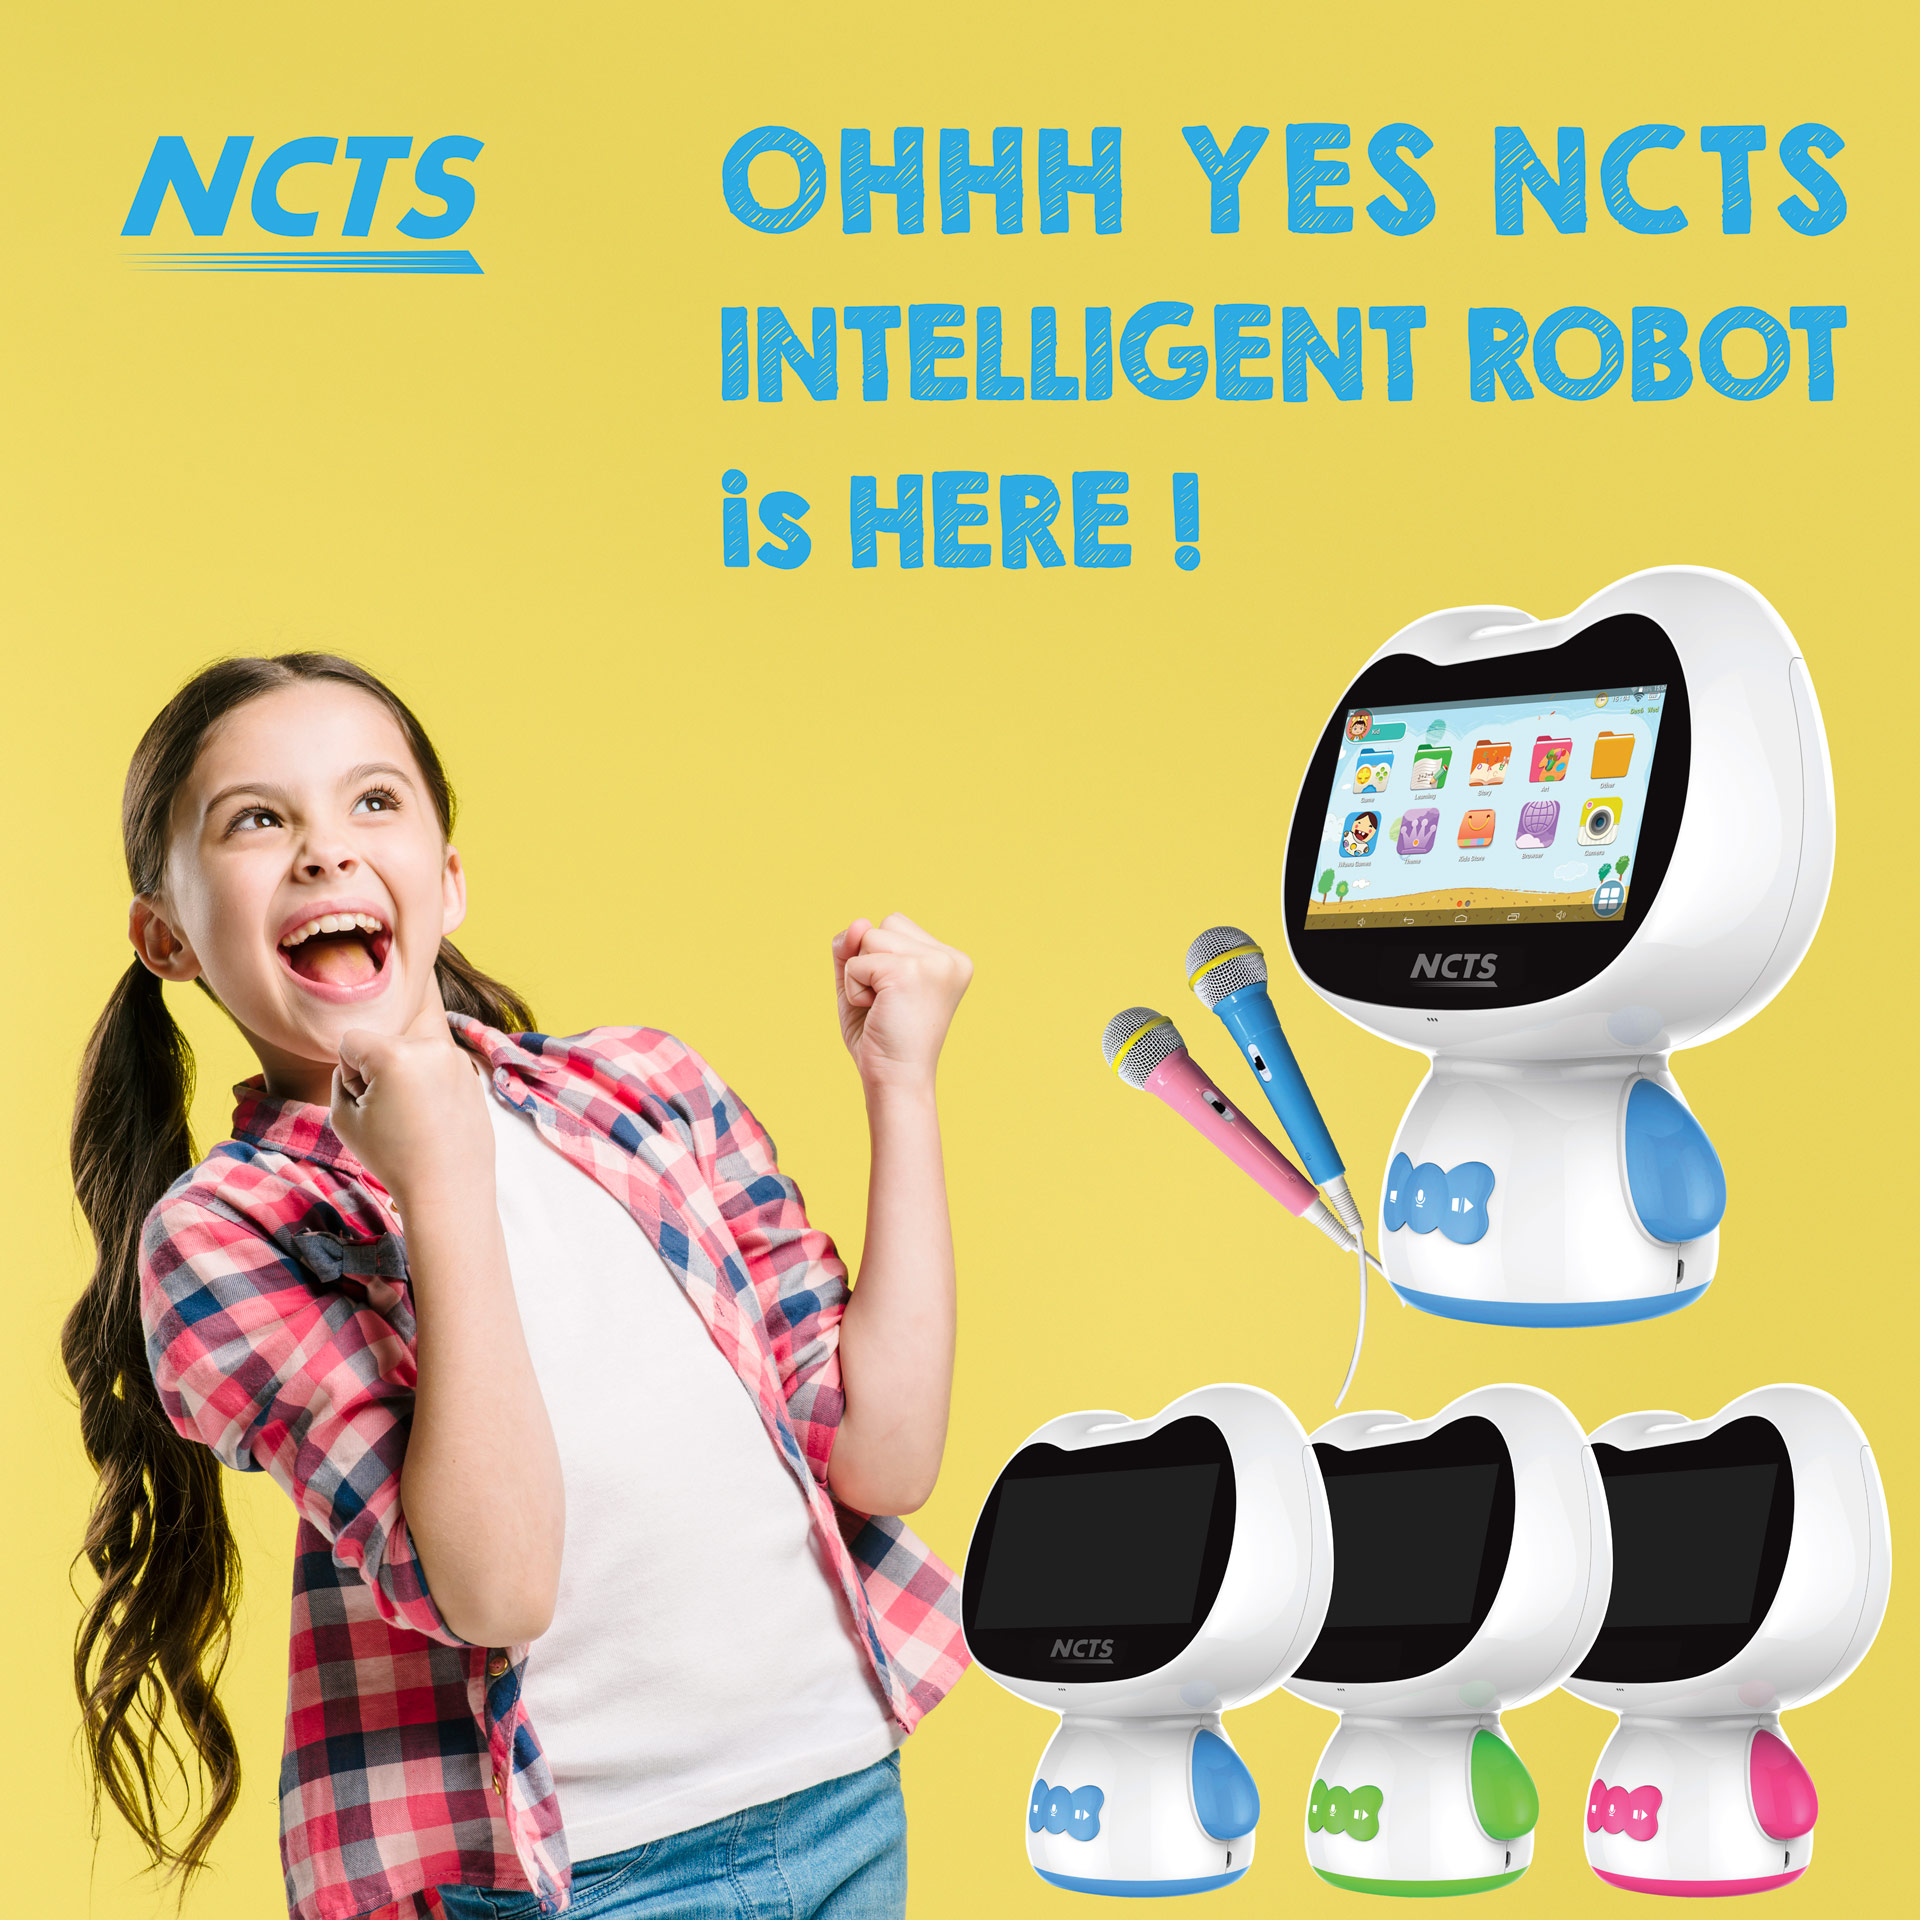 NCTS ROBOT